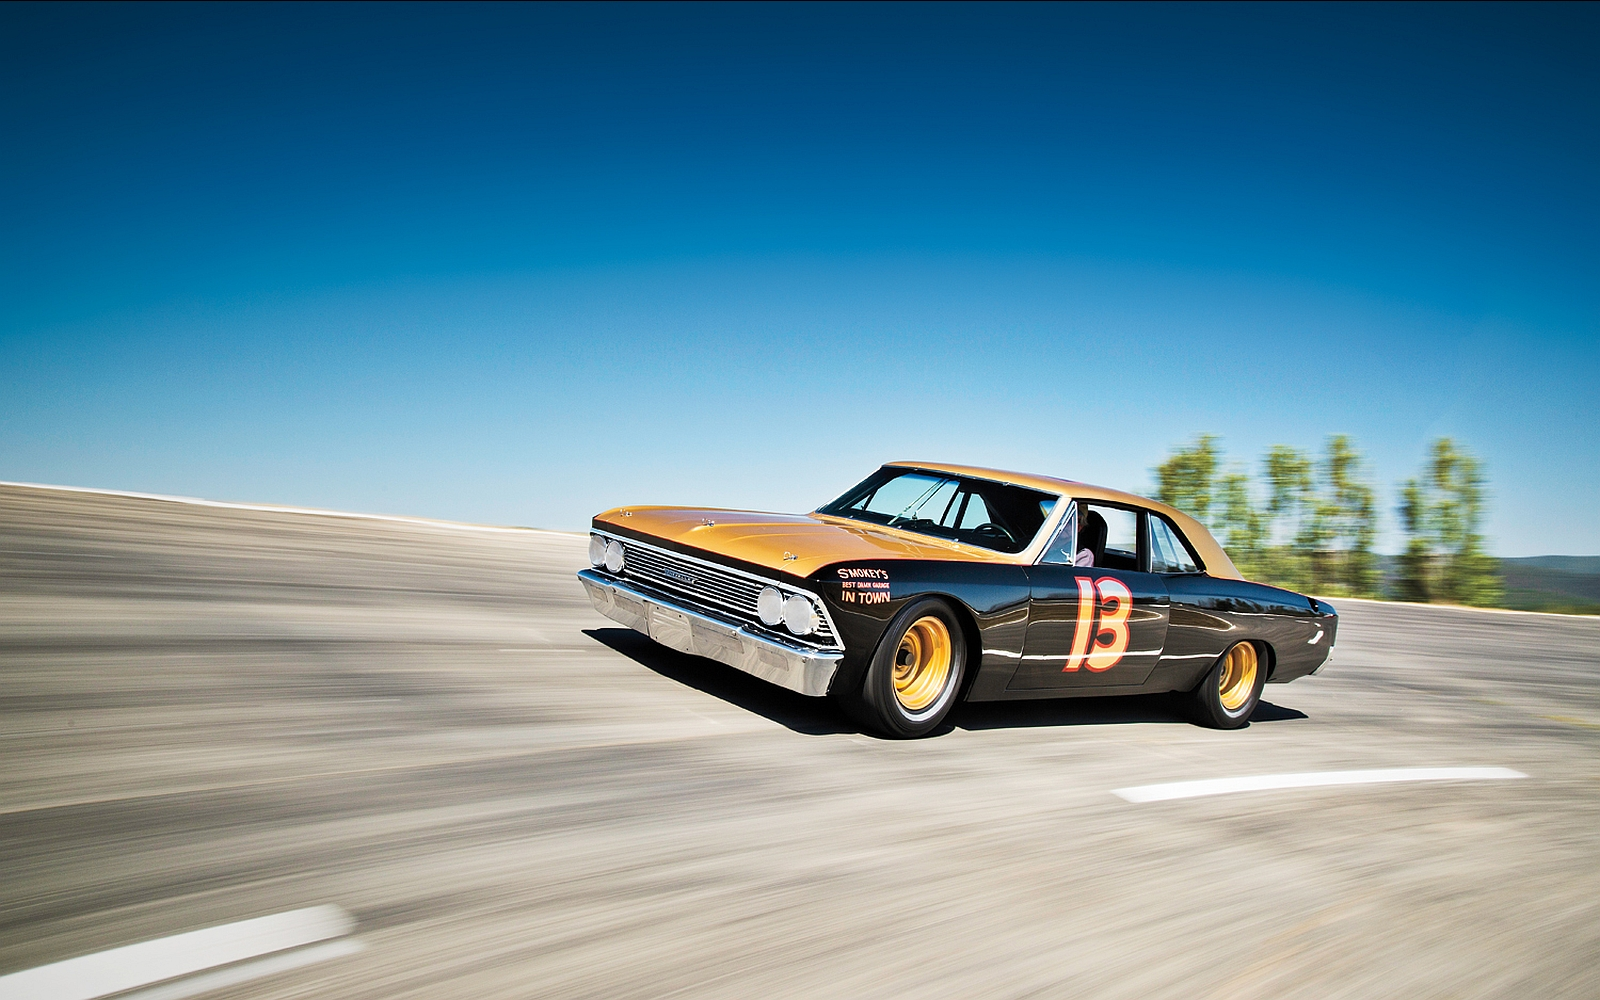 1966 Chevrolet Chevelle Wallpapers Backgrounds 1600x1000